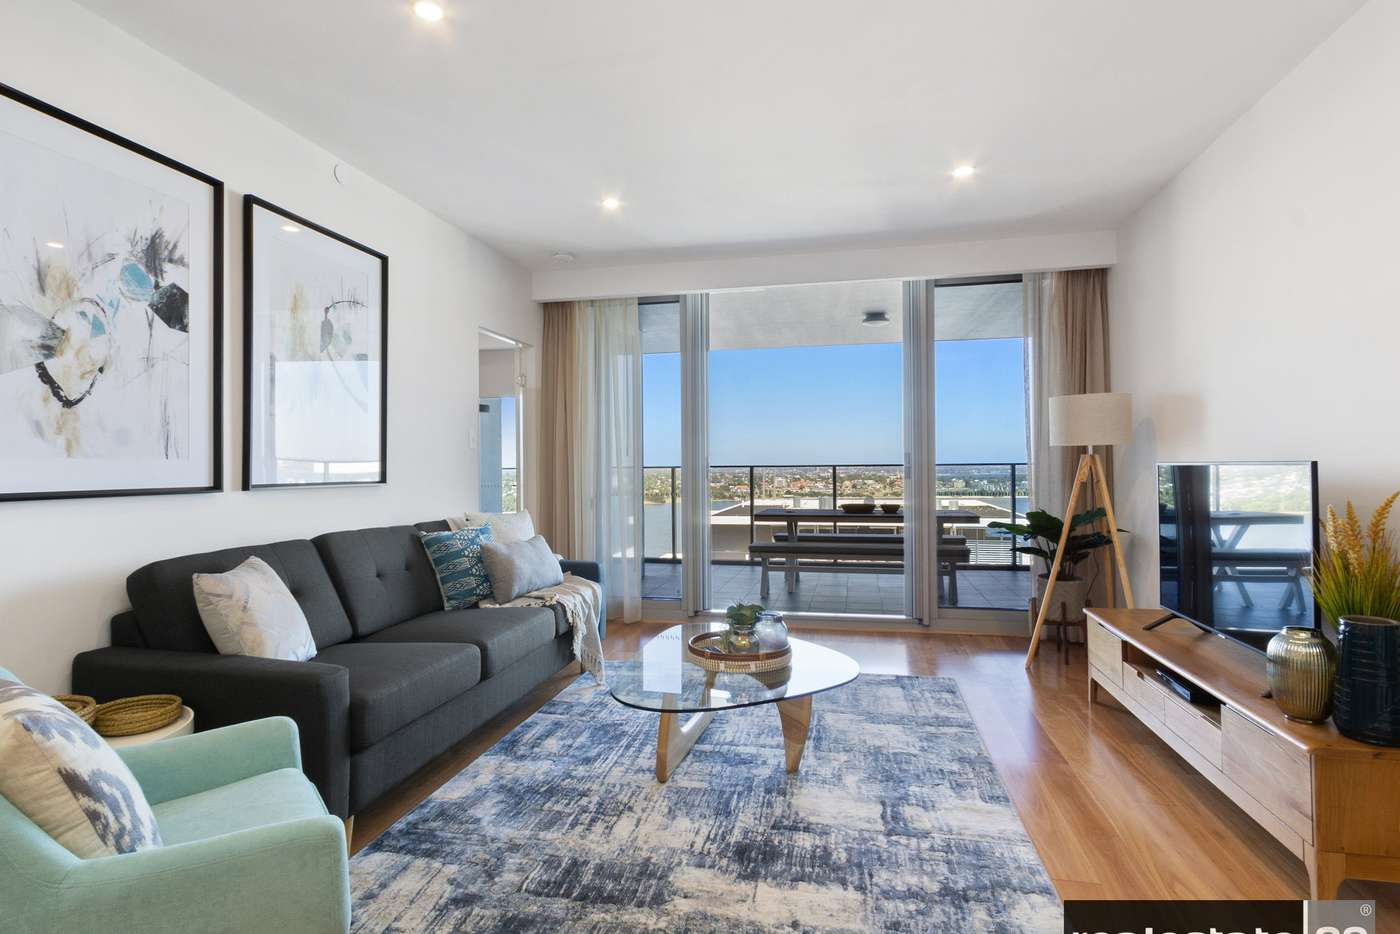 Main view of Homely apartment listing, 142/189 Adelaide Terrace, East Perth WA 6004